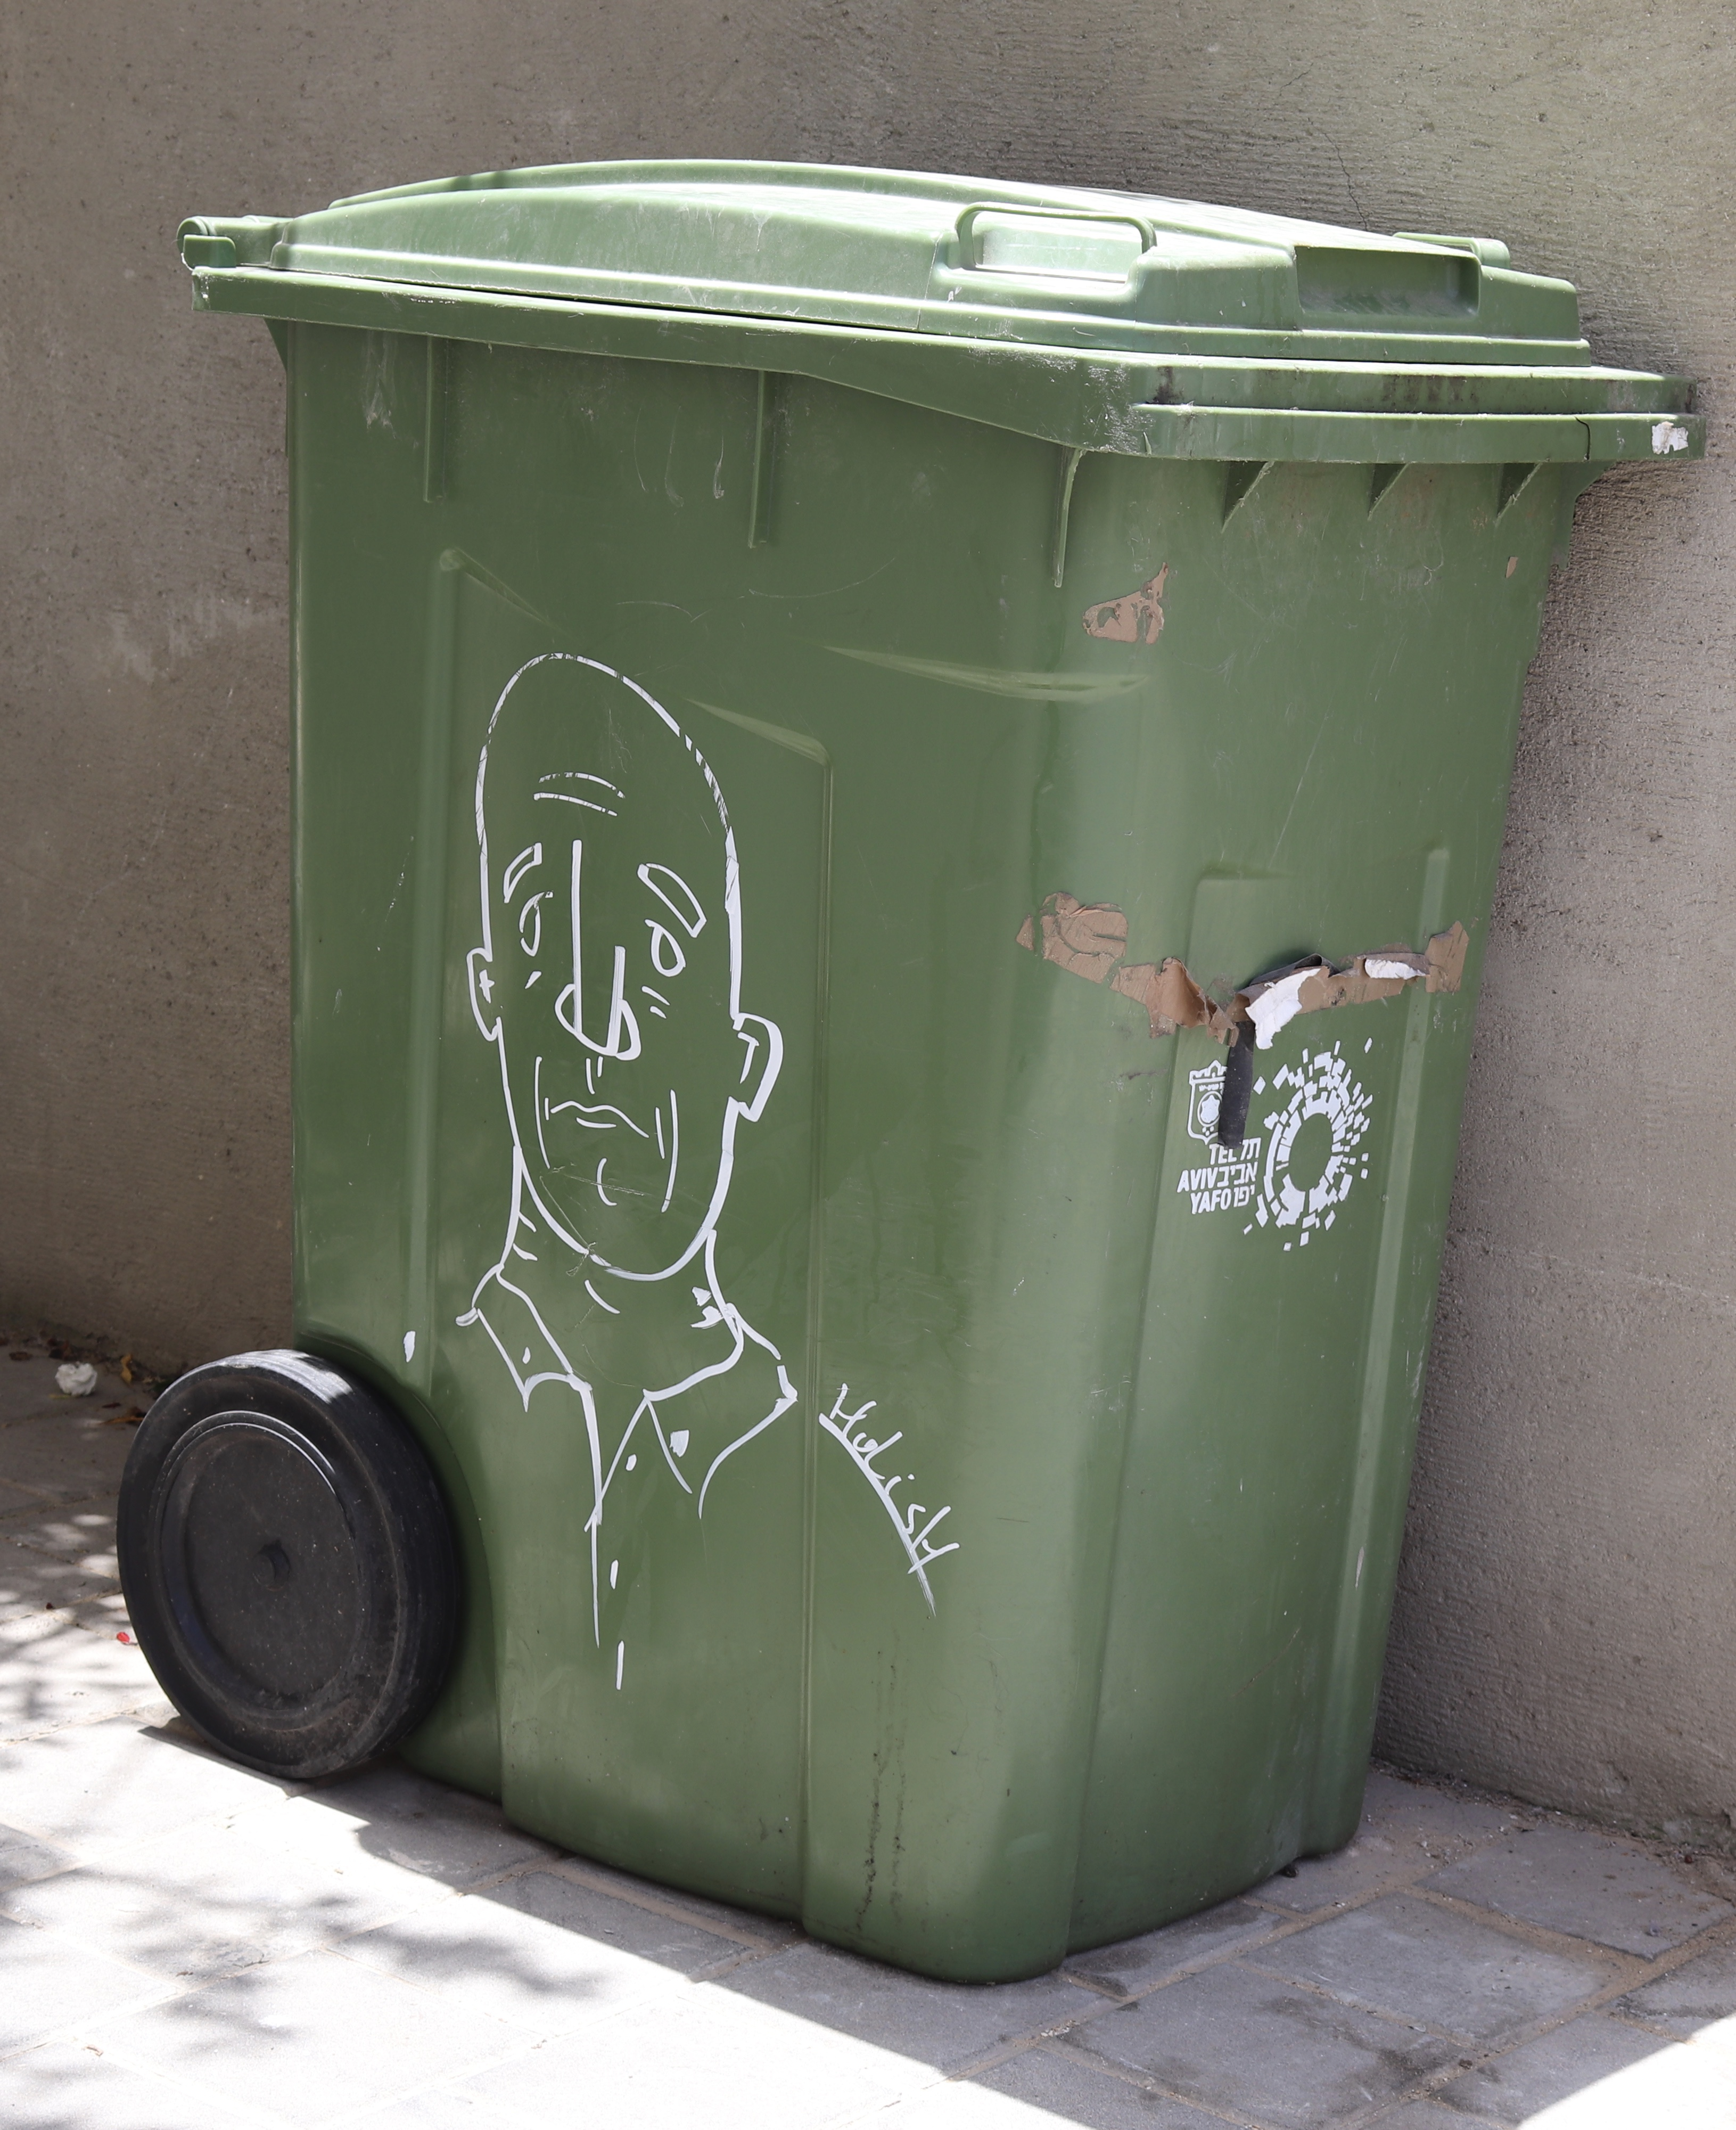 graffiti on a wheelie bin in Tel Aviv